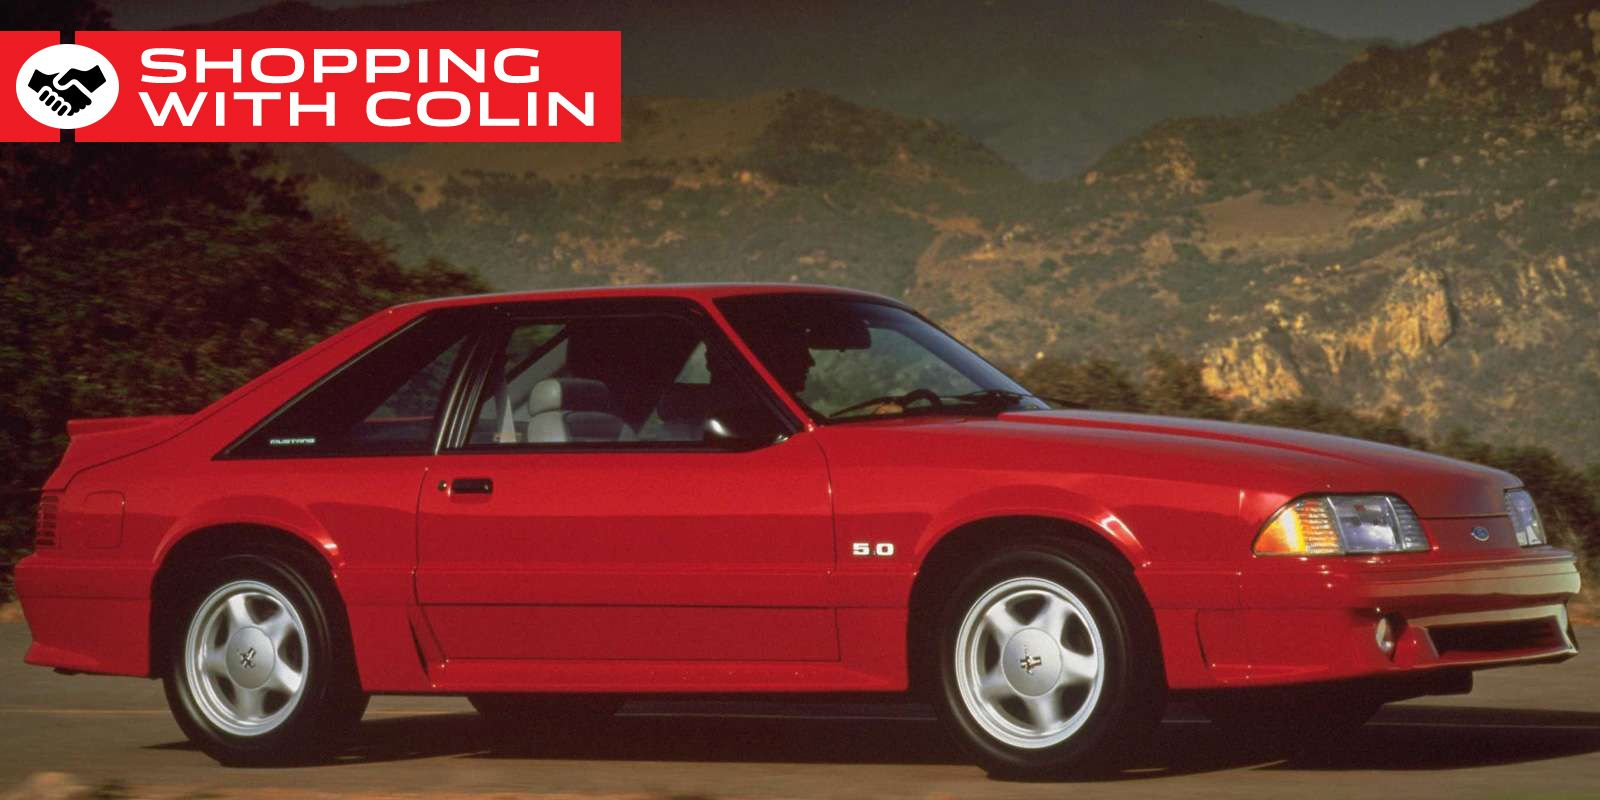 Ford Mustang Buyers Guide How To Buy Fox Body 1986 Gt 5 0 Convertible